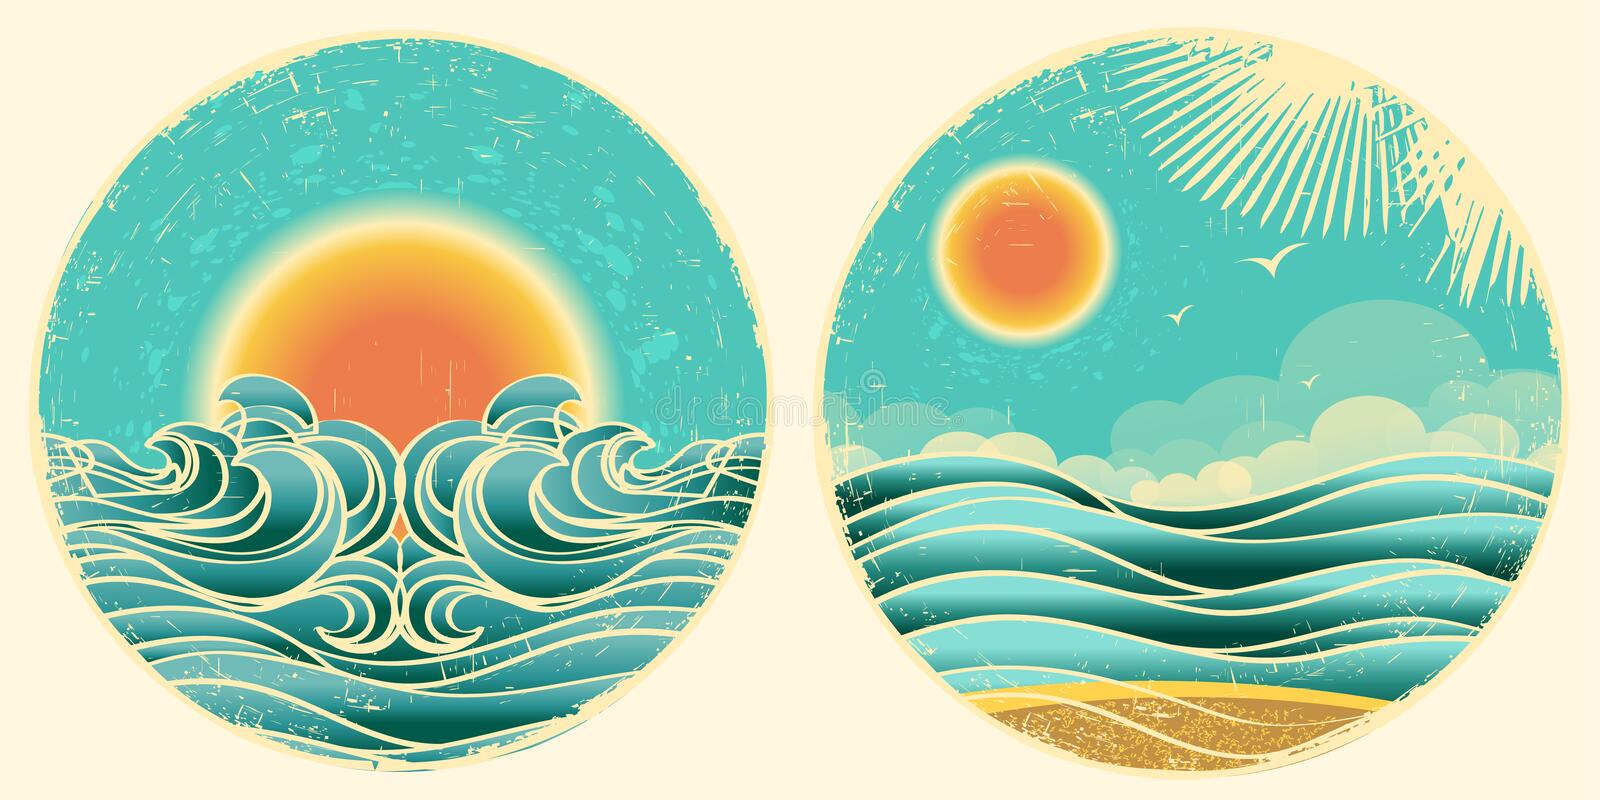 Vintage nature seascape symbol royalty free illustration